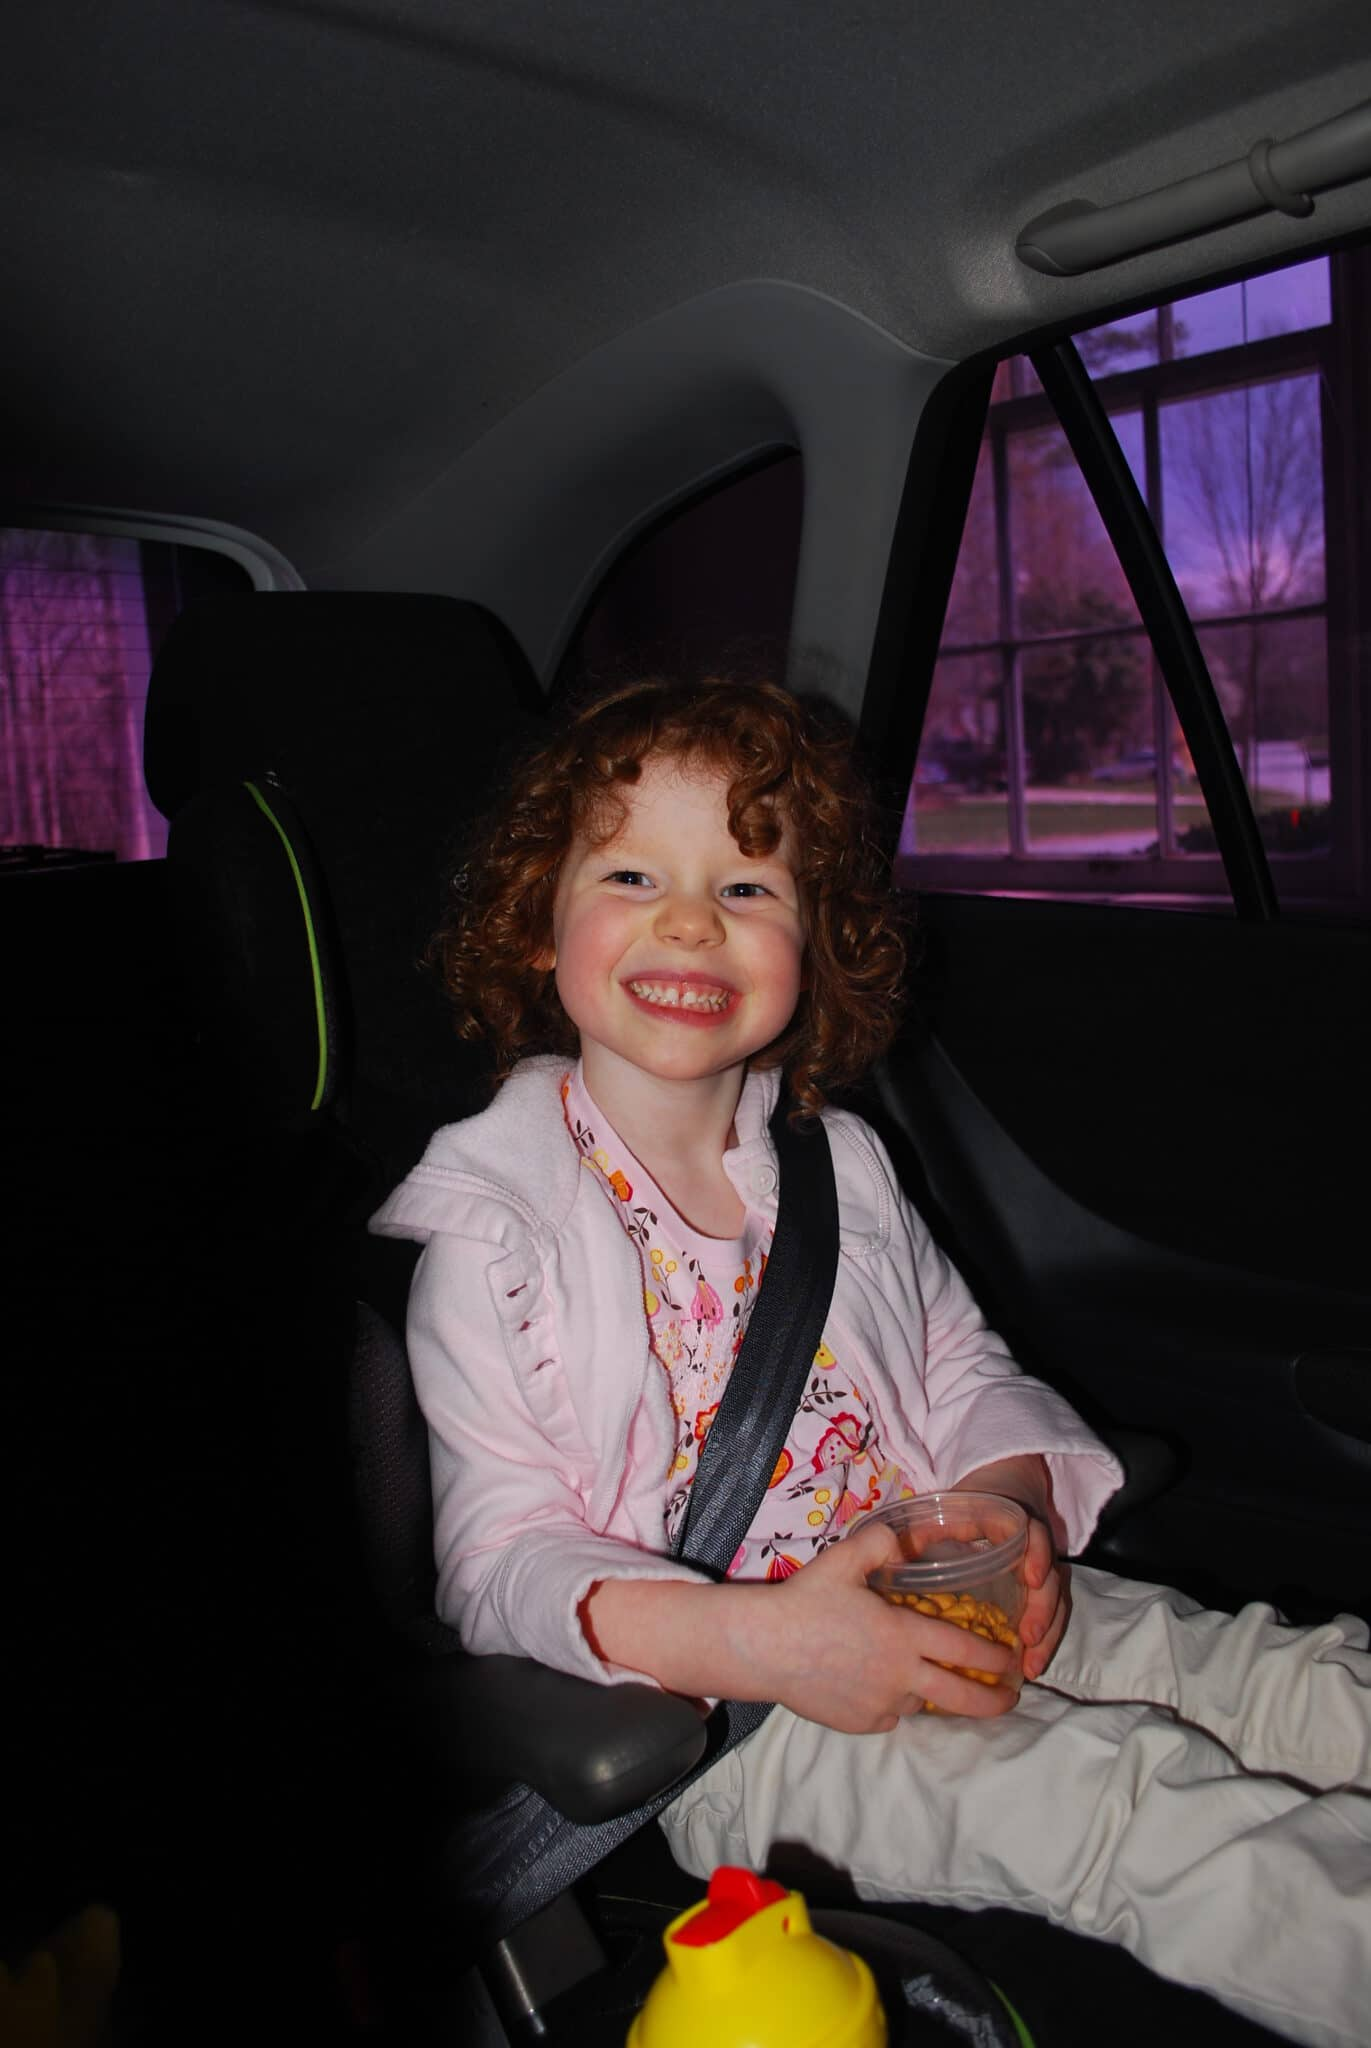 booster in car smiles and snacks